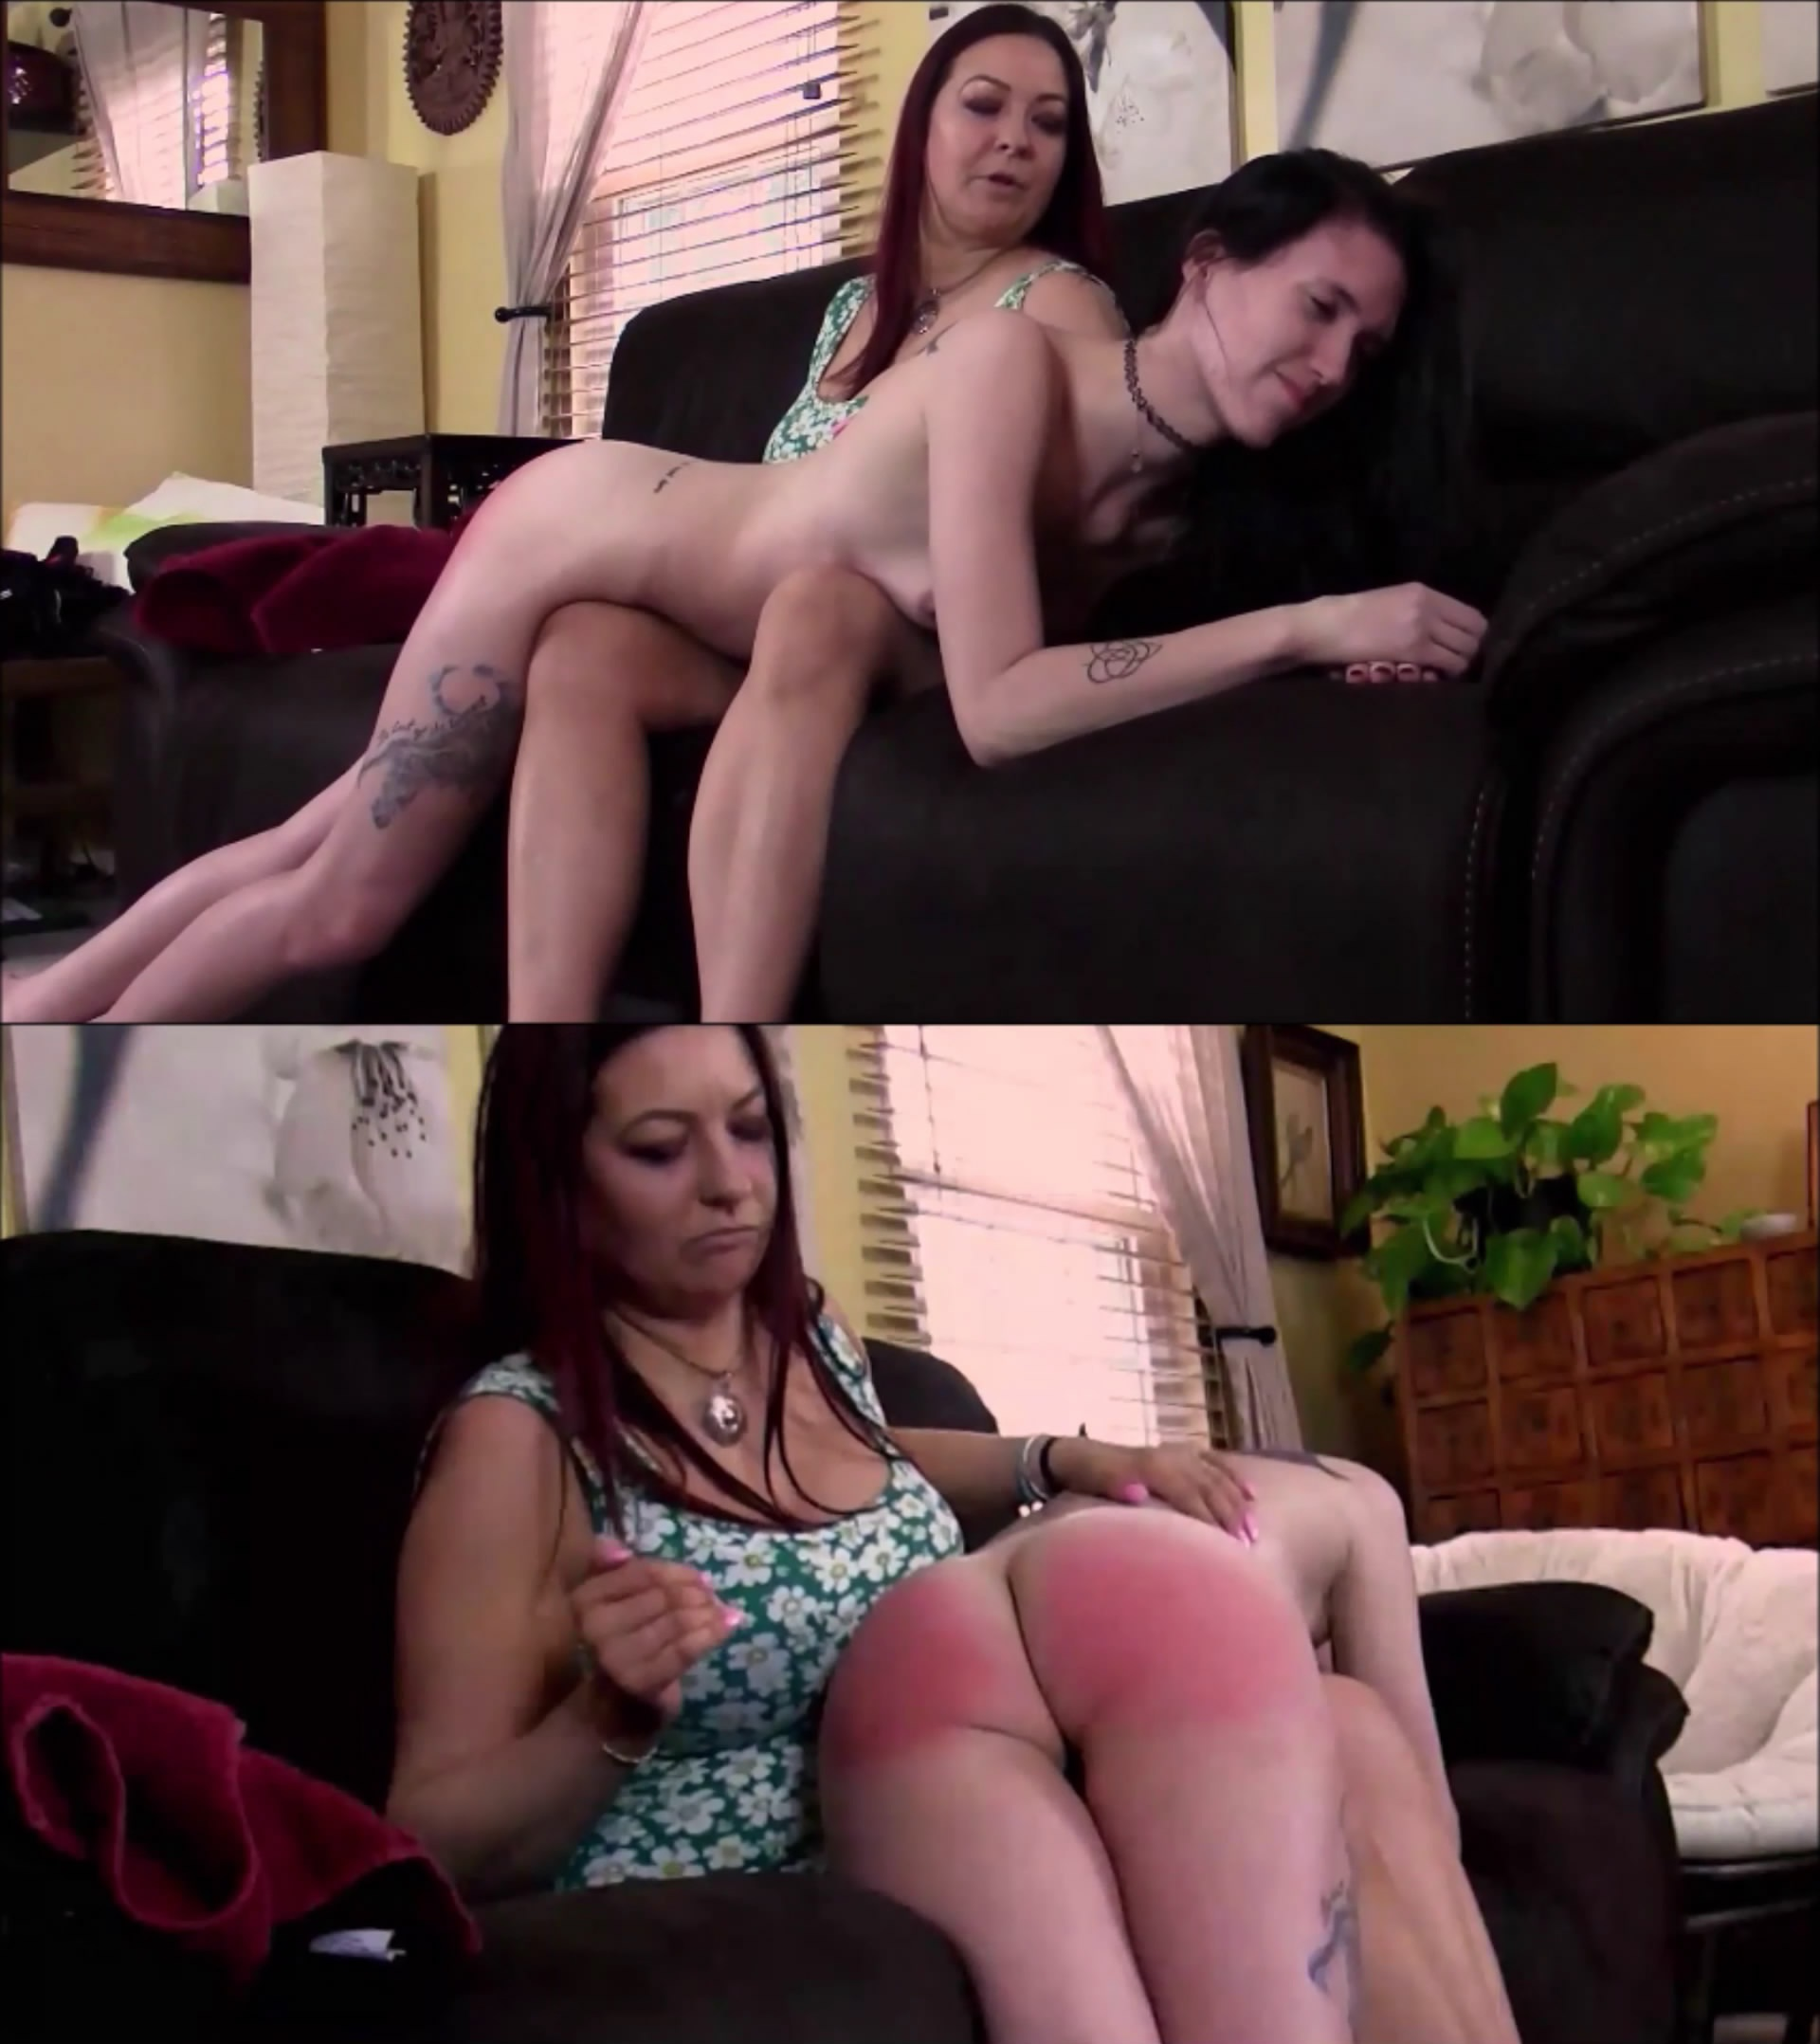 Punished Brats – MP4/Full HD – Skipping School Part 1 of 2